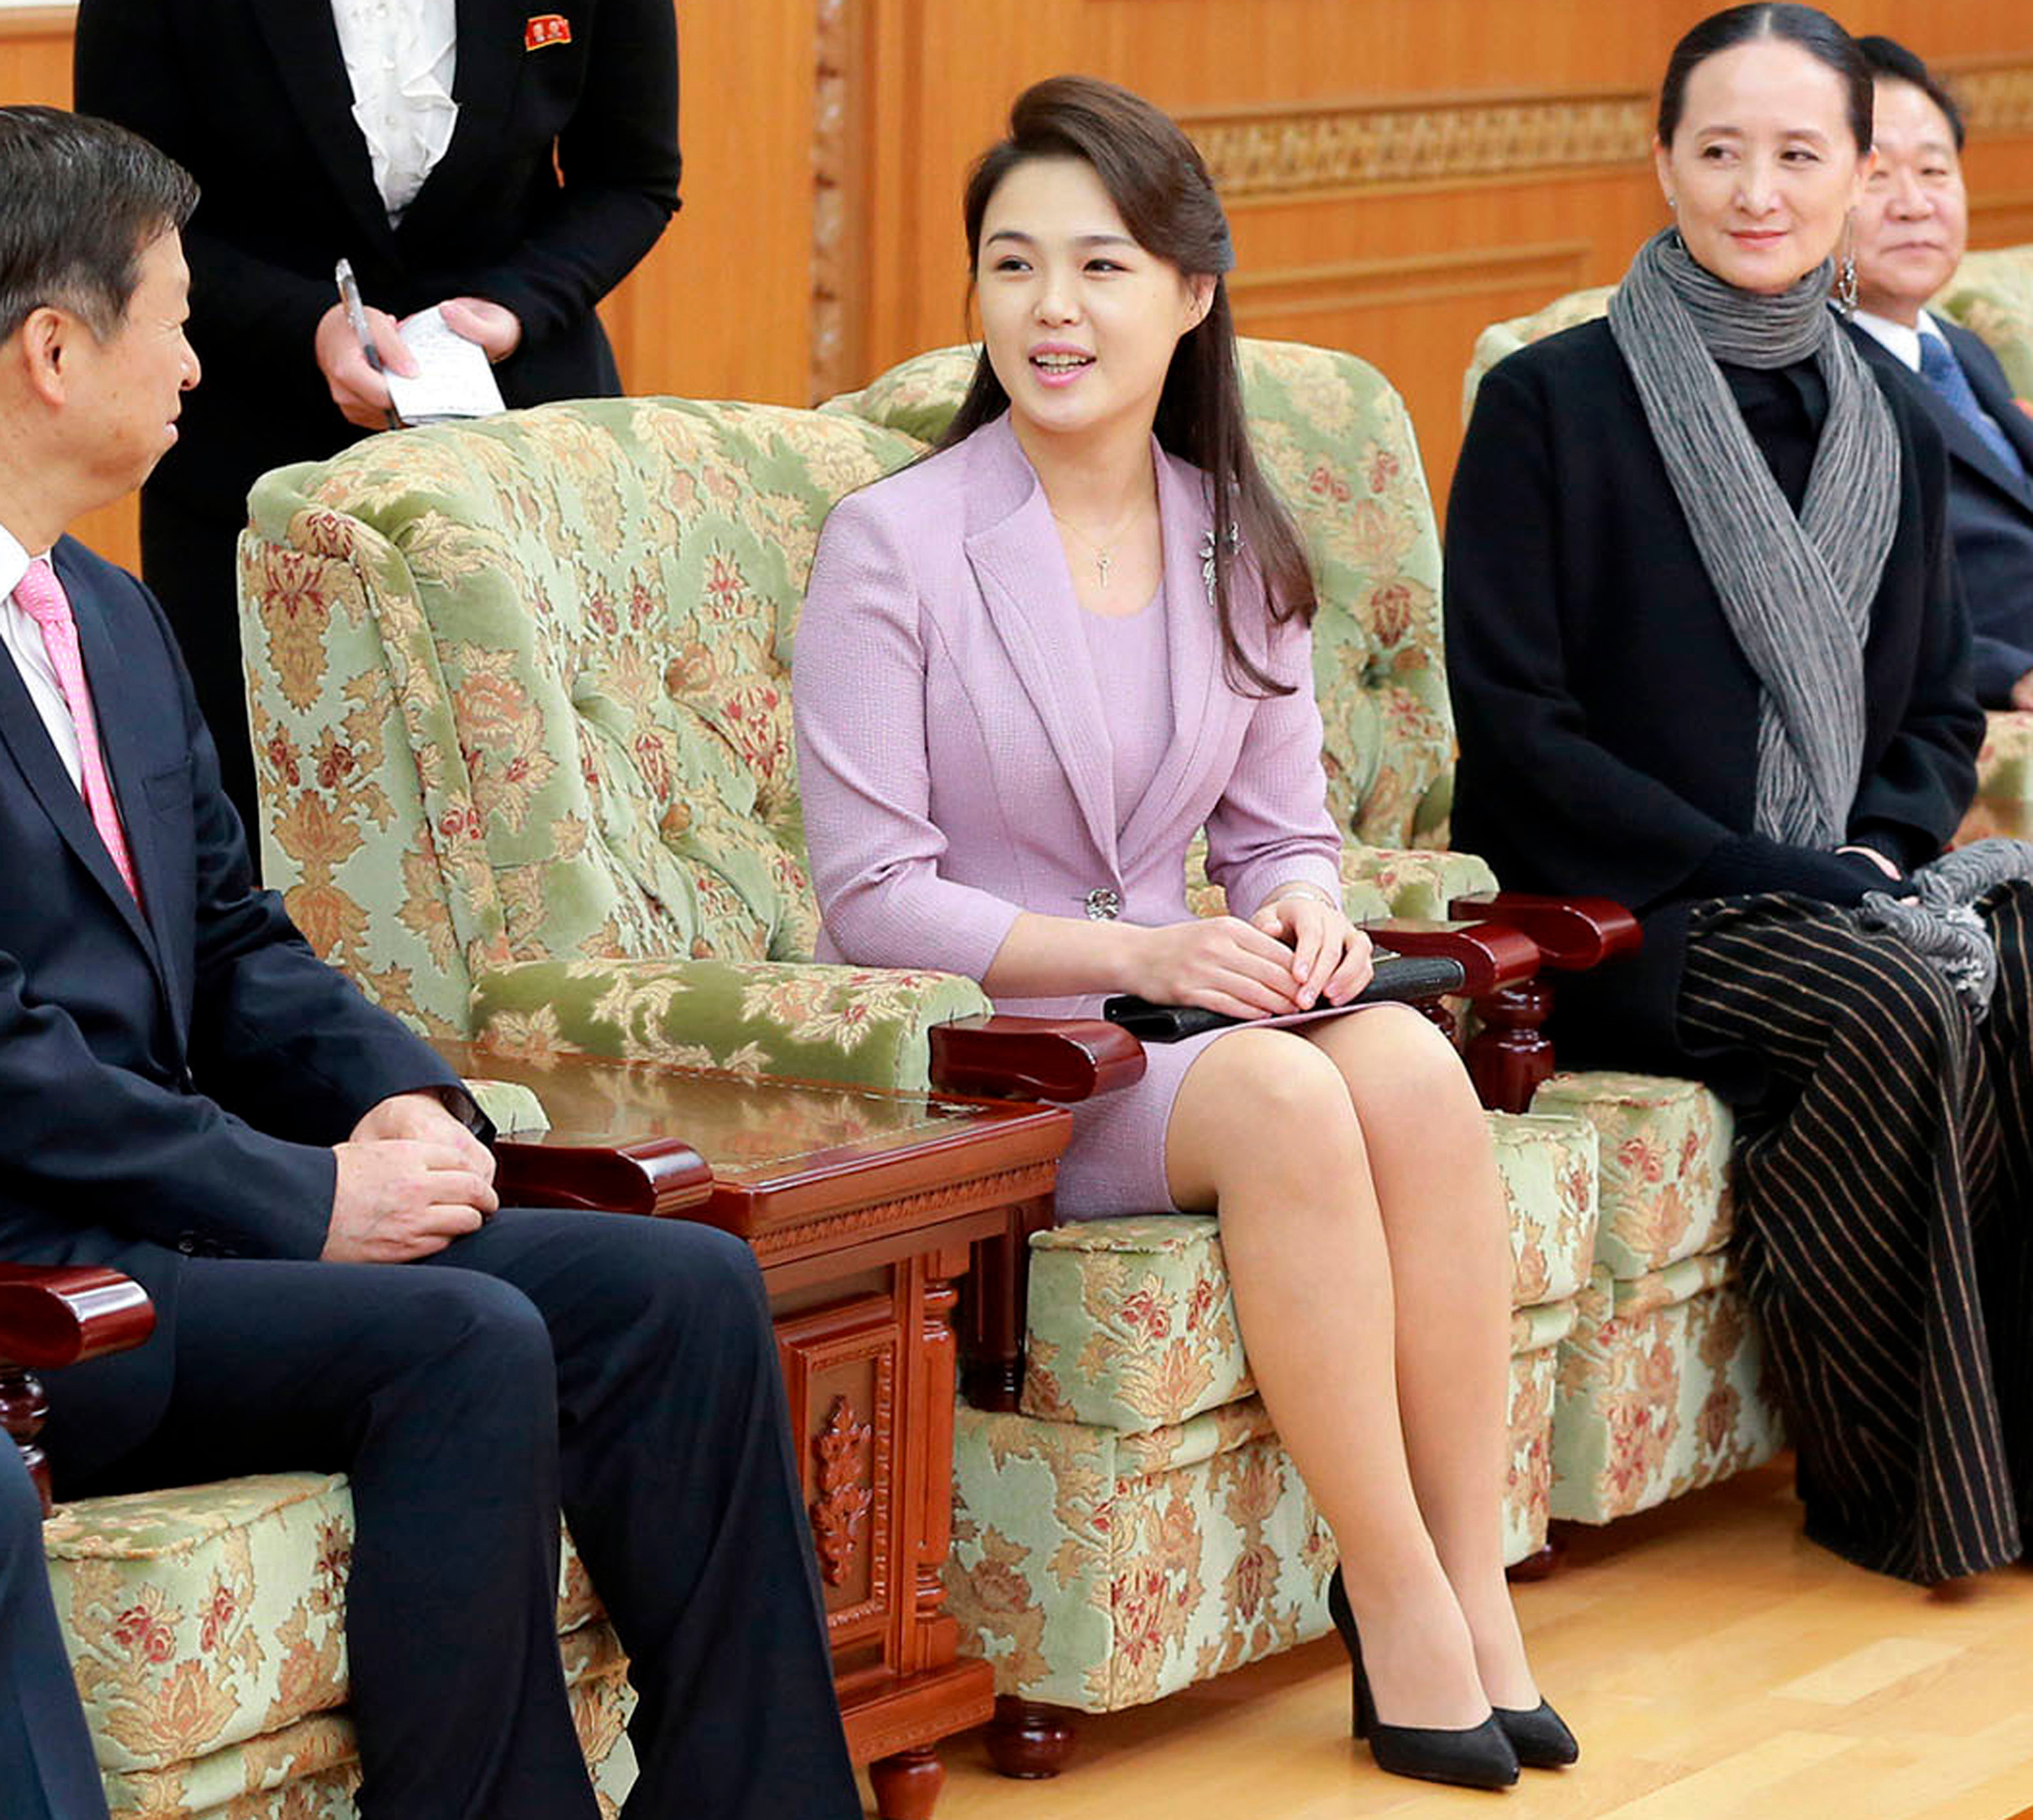 Ri Sol Ju: The woman married to Kim Jong Un